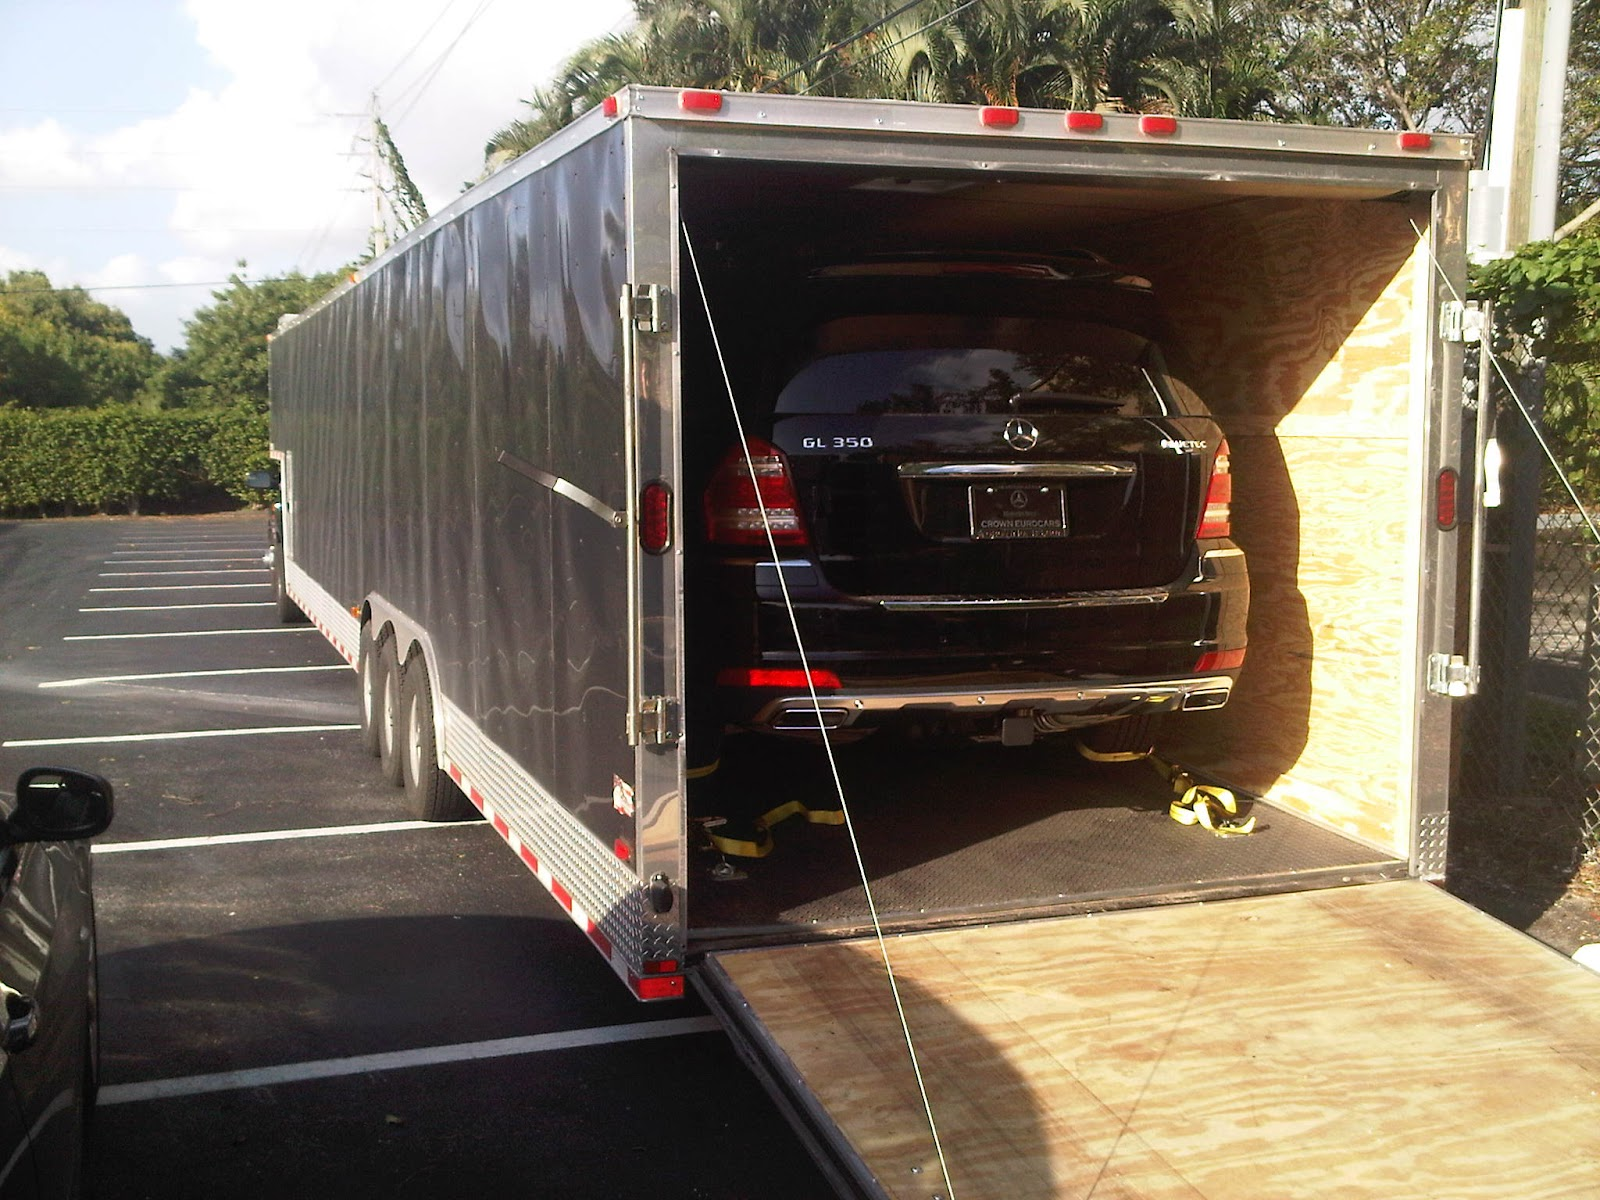 Auto Transport Quotes Auto Transport Uk Car Shipping And Movers Uk Free Auto Transport